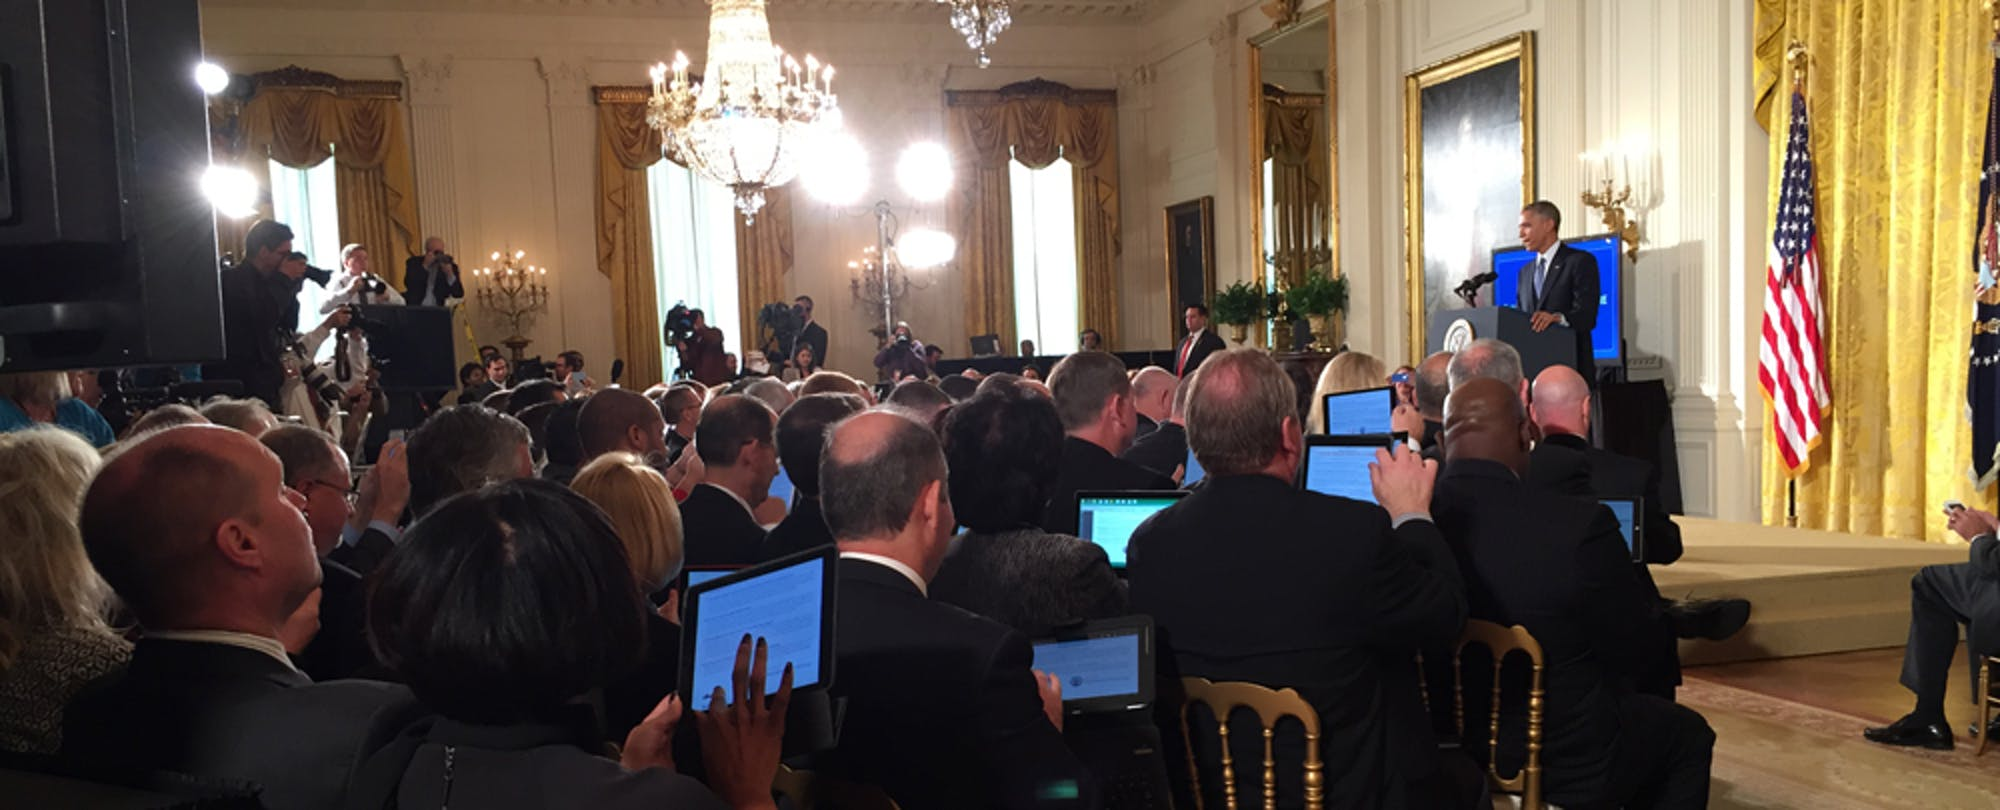 President Obama Collects Pledges from Superintendents to Make Districts 'Future Ready'